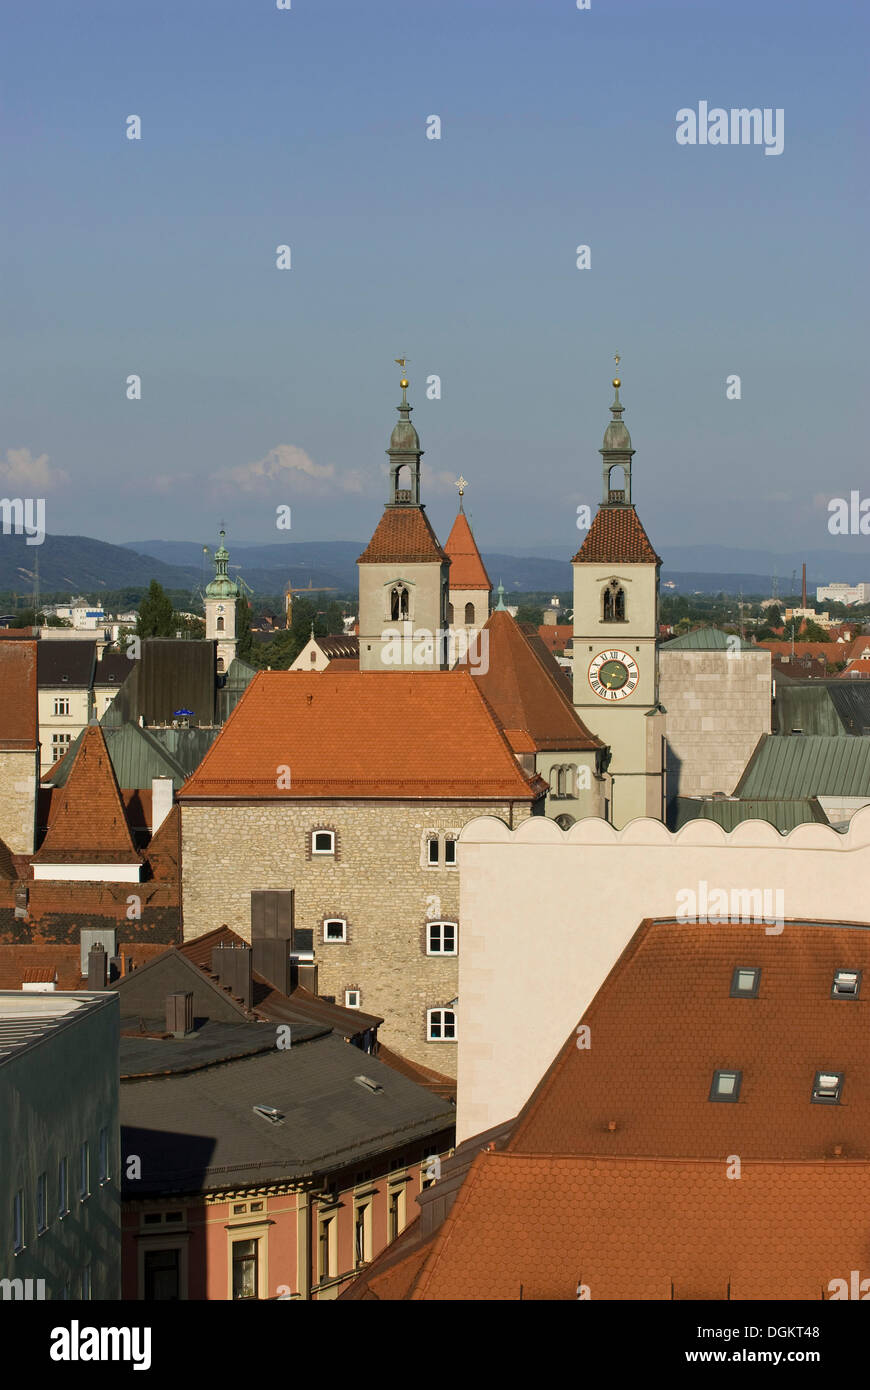 View over the roofs of Regensburg towards the Protestant Neupfarrkirche church, UNESCO World Heritage site, Upper Palatinate - Stock Image